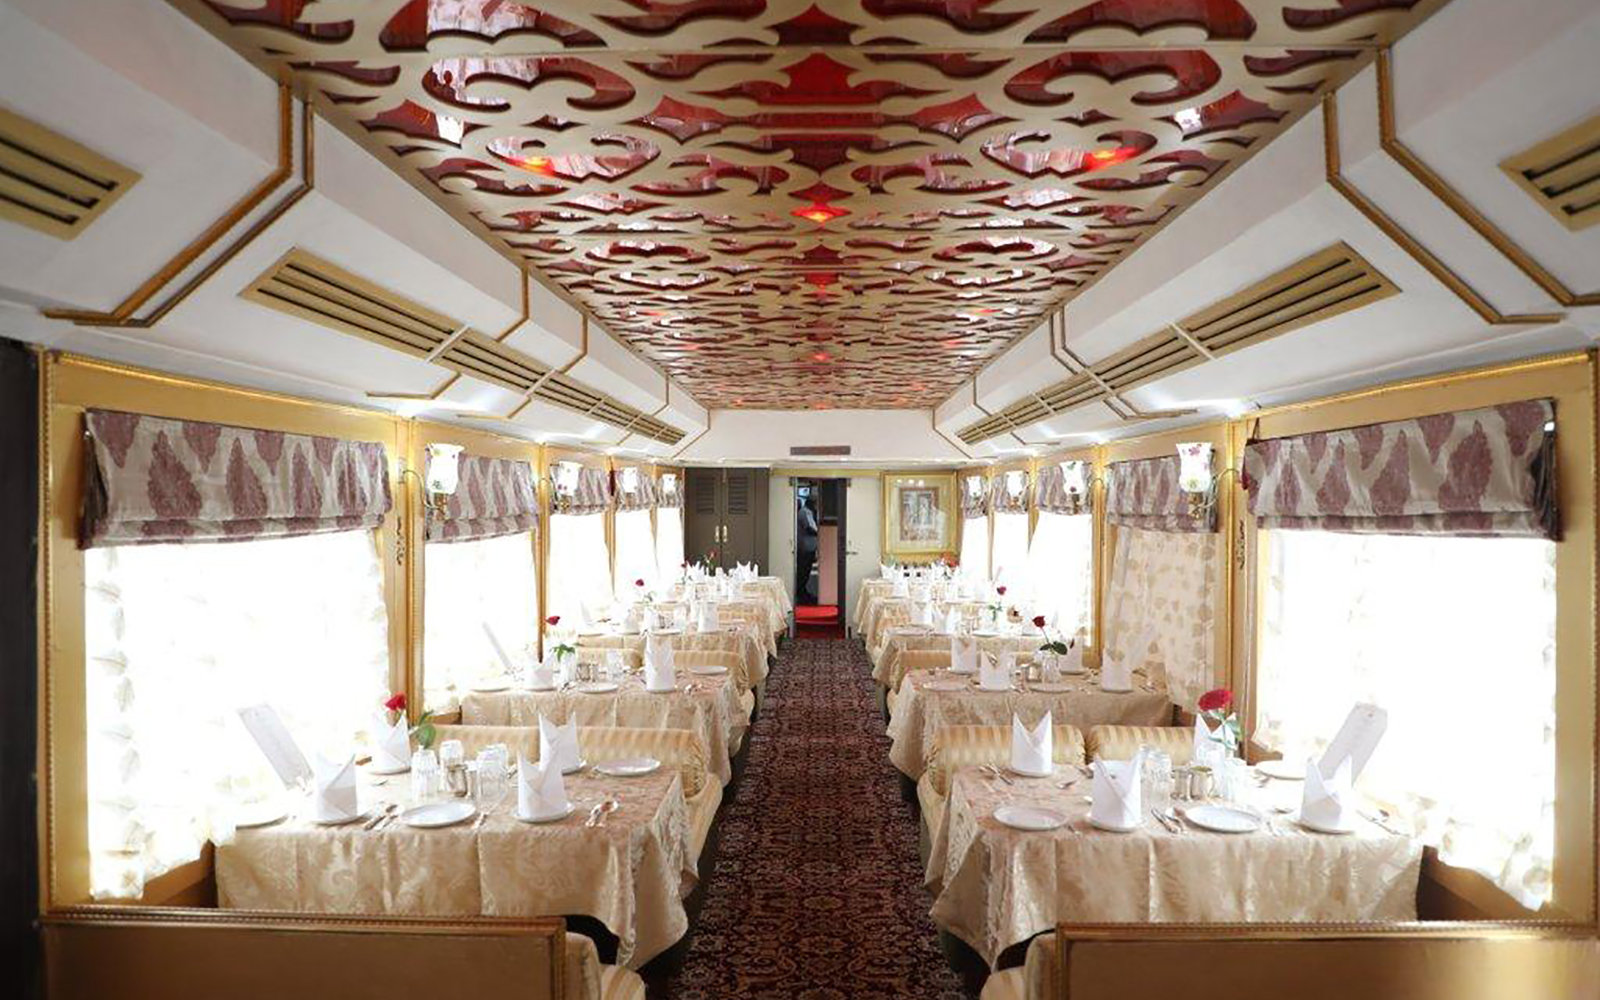 India's 'Palace on Wheels' Is One of the Most Luxurious Train Rides in the World (Video)